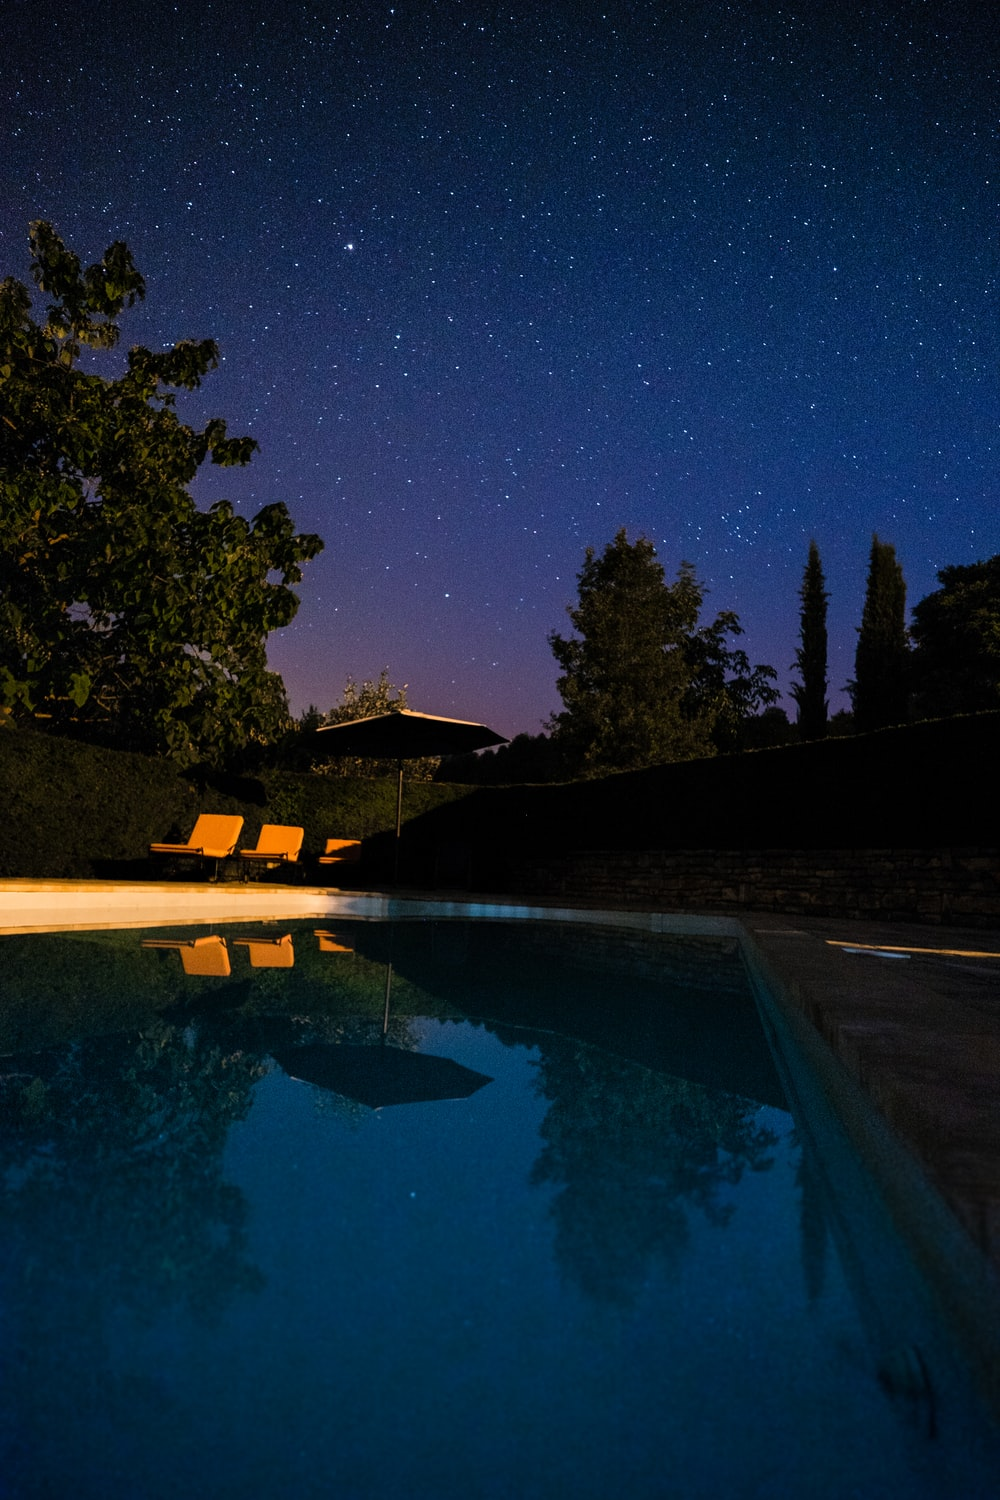 white and brown backyard pool during night time